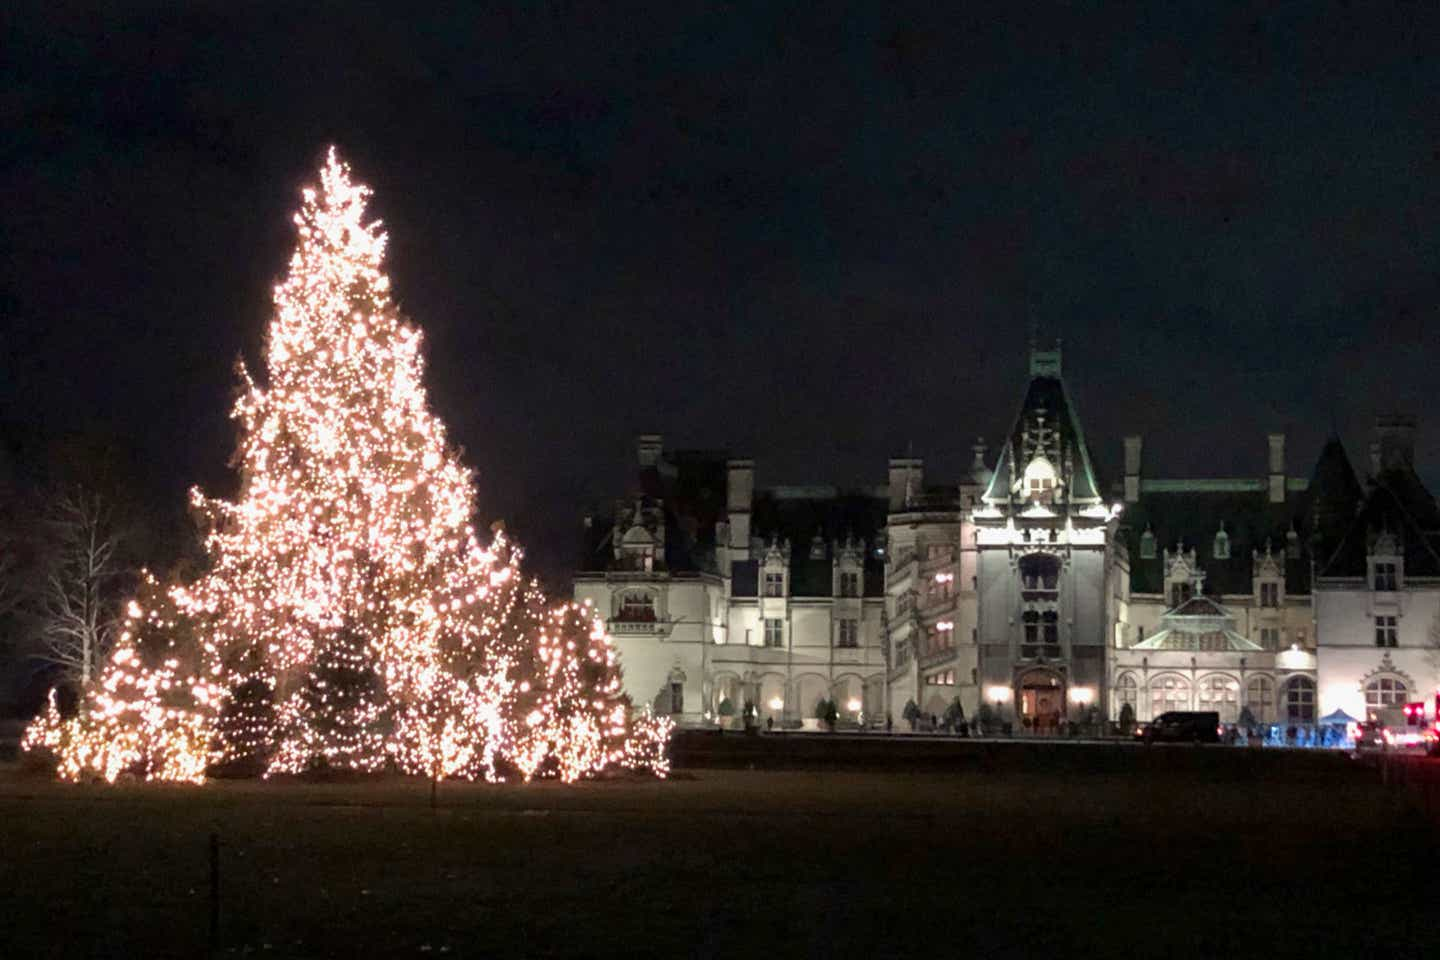 The exterior of the Biltmore Estate at night with a large, string light covered Christmas tree on the front lawn.